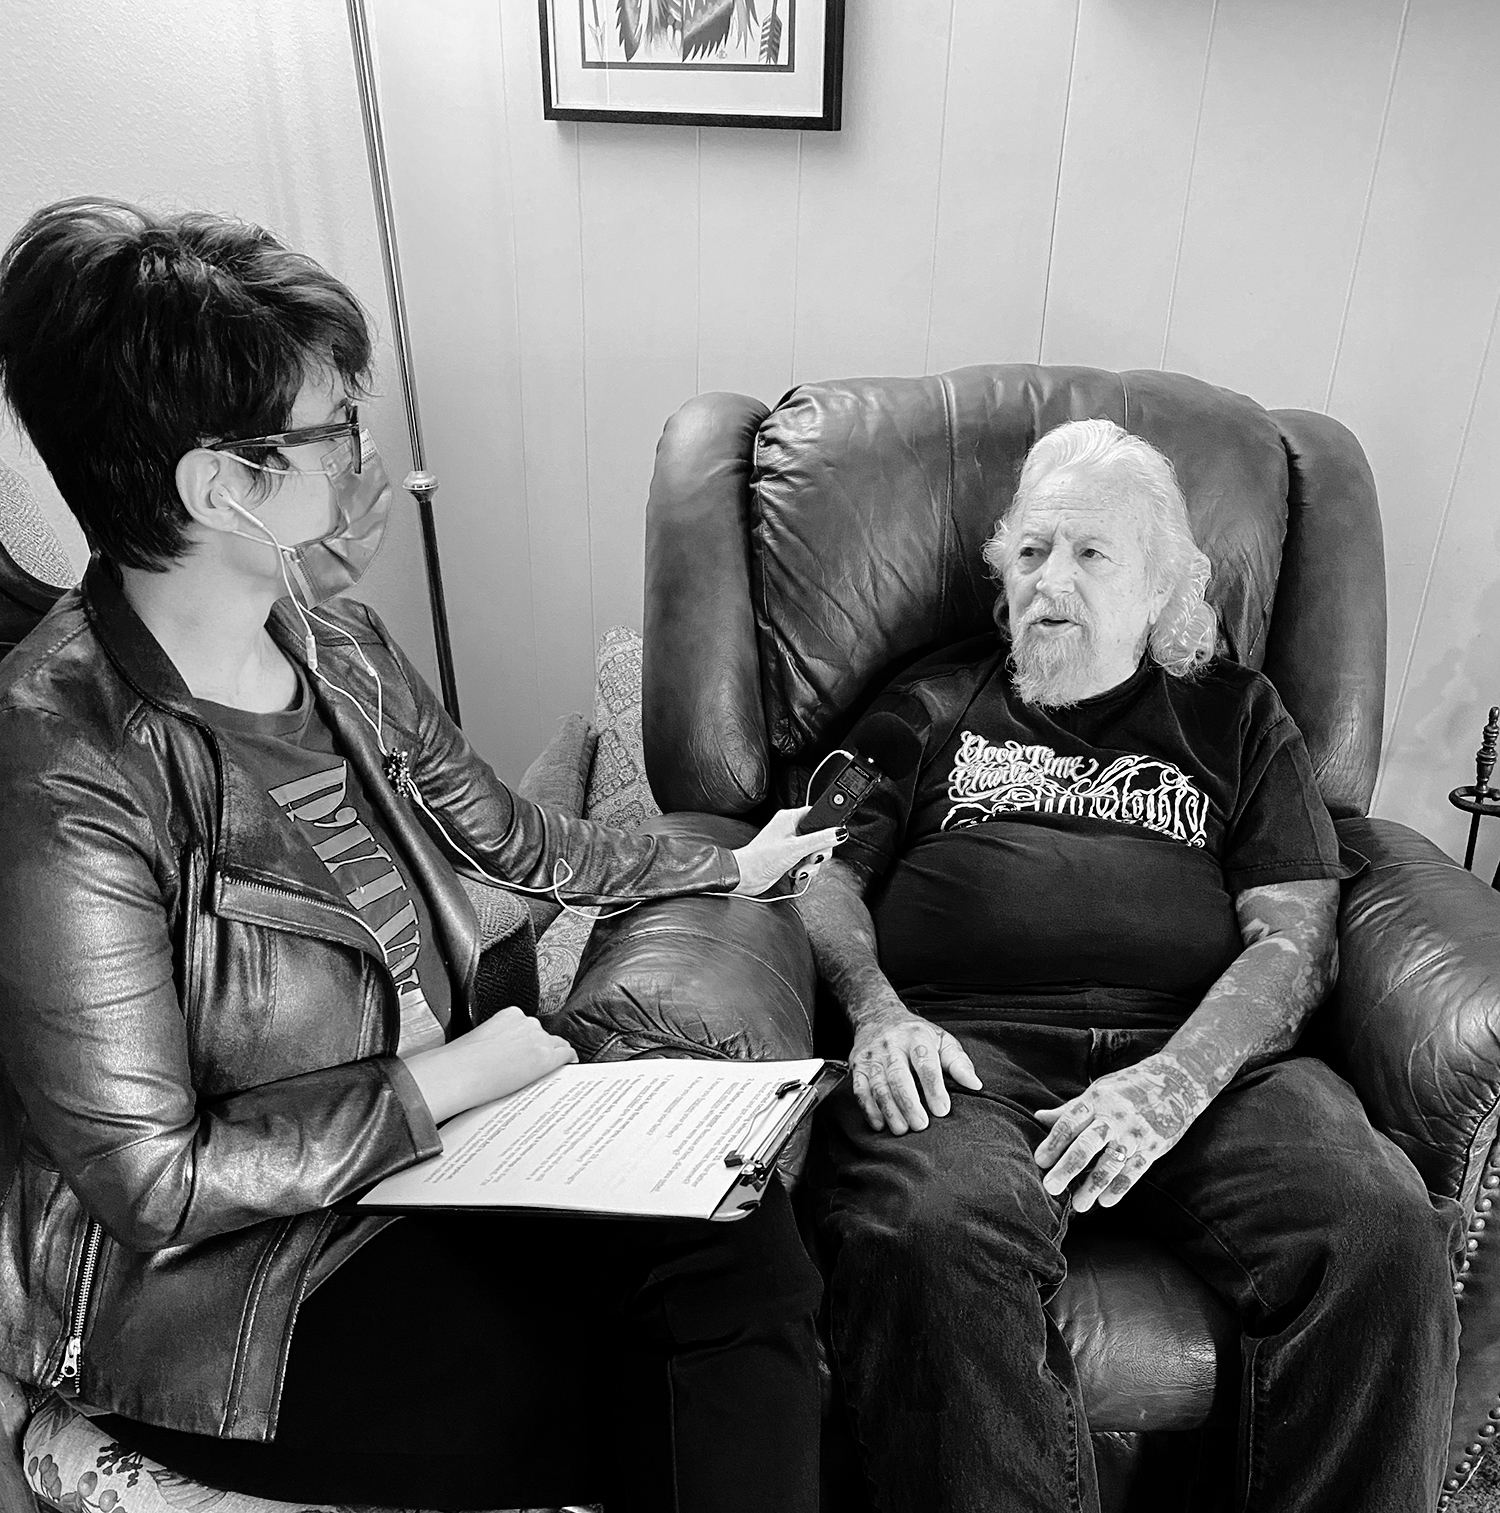 Adriana de Barros (tattoo journalist) on left, and charlie cartwright (tattoo legend black and grey prison-style) on right, interview